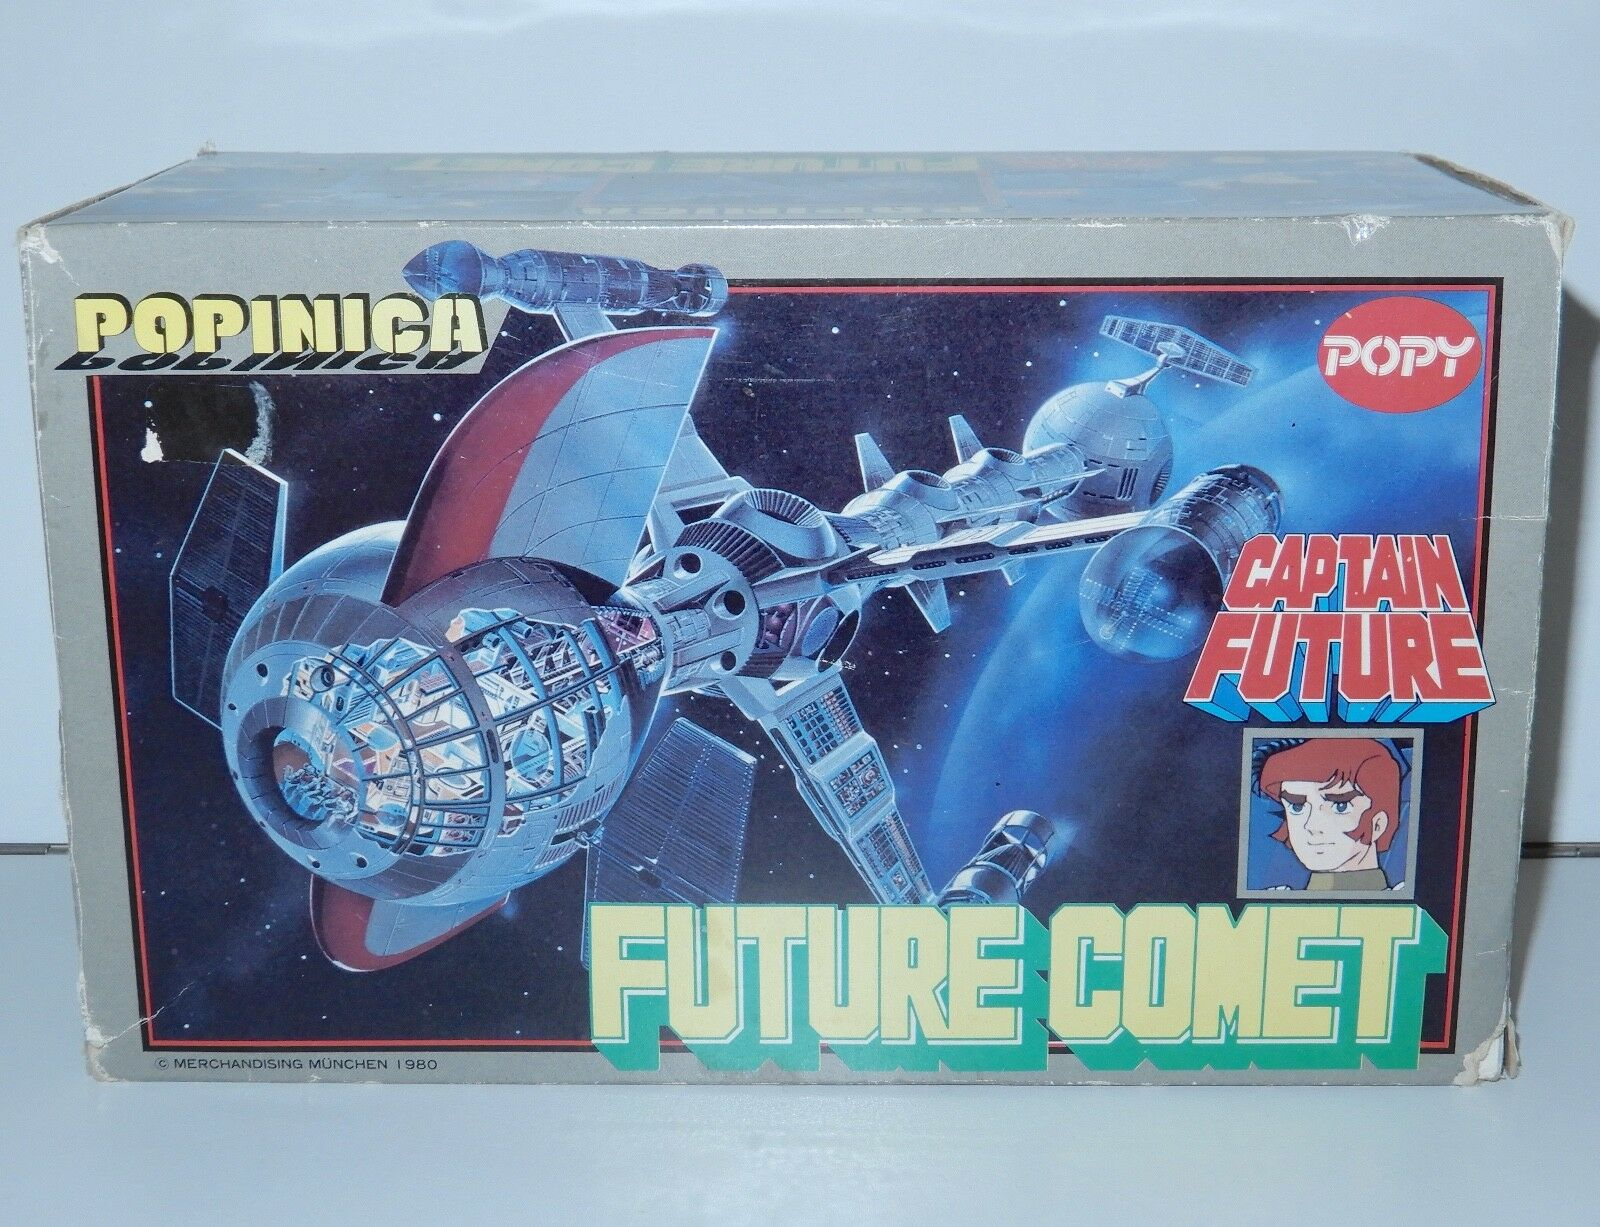 CAPTAIN FUTURE CAPITAINE FLAM POPINICA FUTURE COMET IN ORIGINAL BOX 1980s POPY